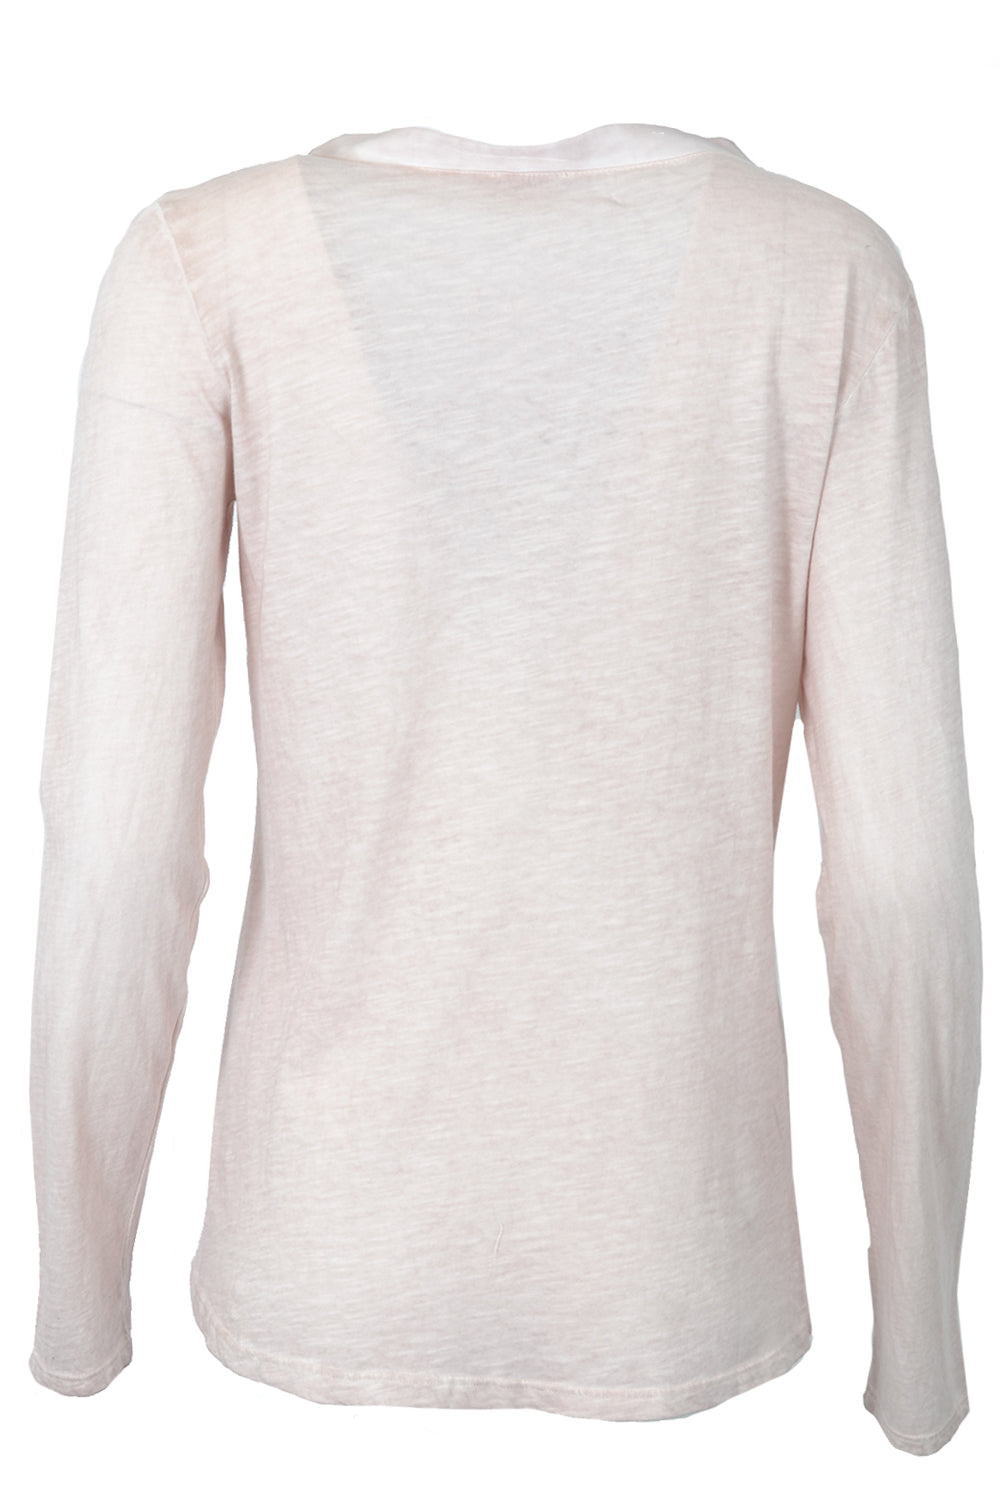 Suzy D Long Sleeve Pocket Top Soft Pink